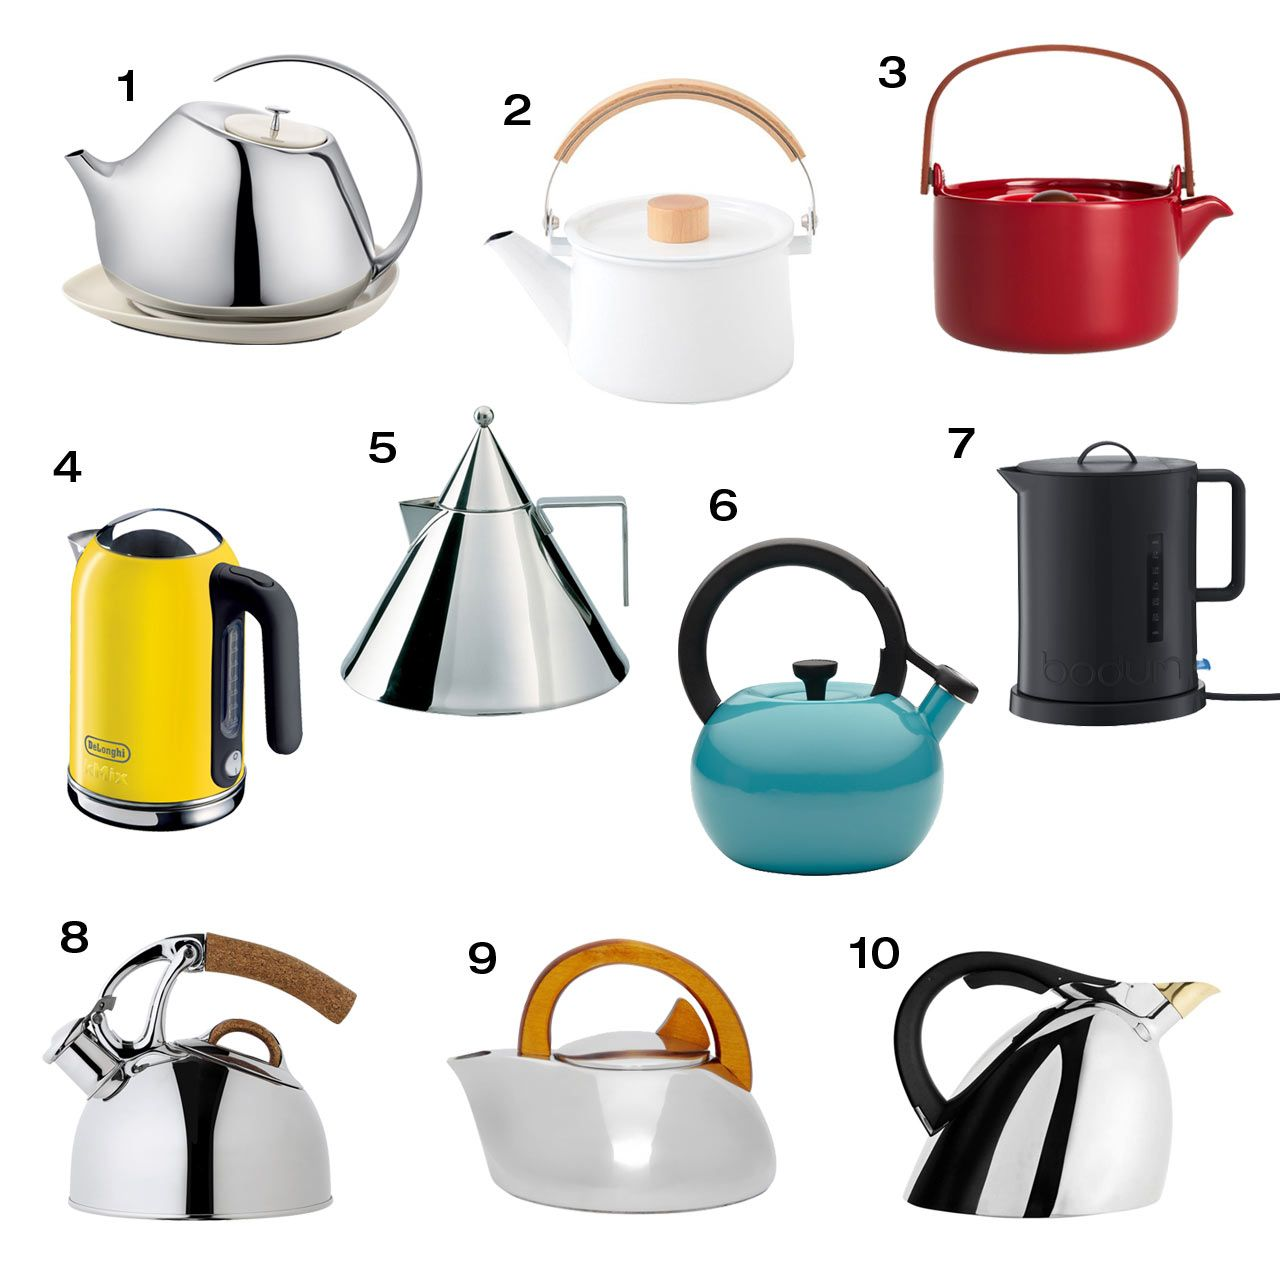 Making Tea In A Teapot 10 Modern Tea Kettles And Teapots Home Furnishings